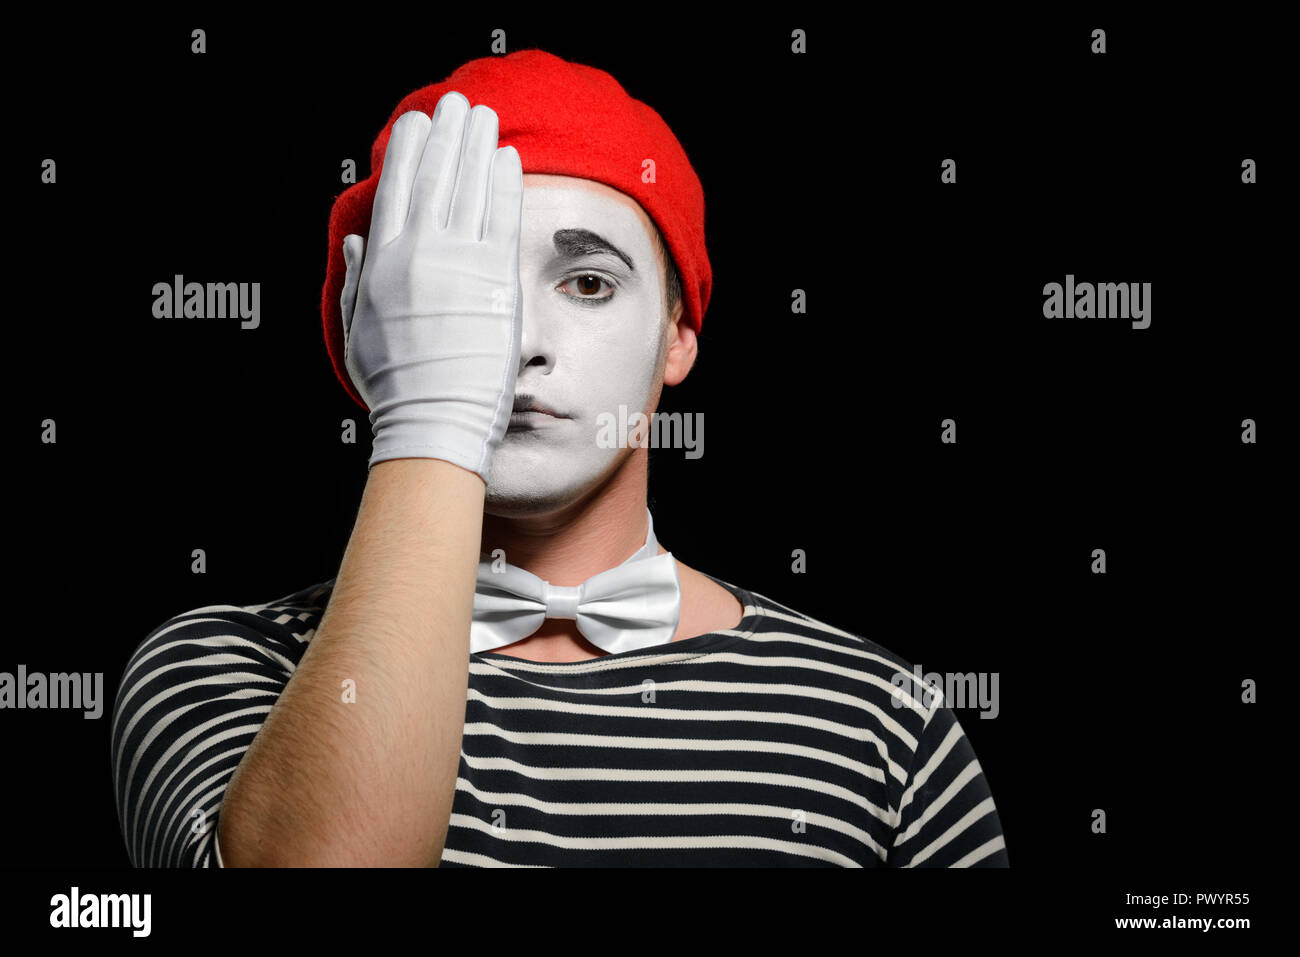 Mime covering half of face - Stock Image